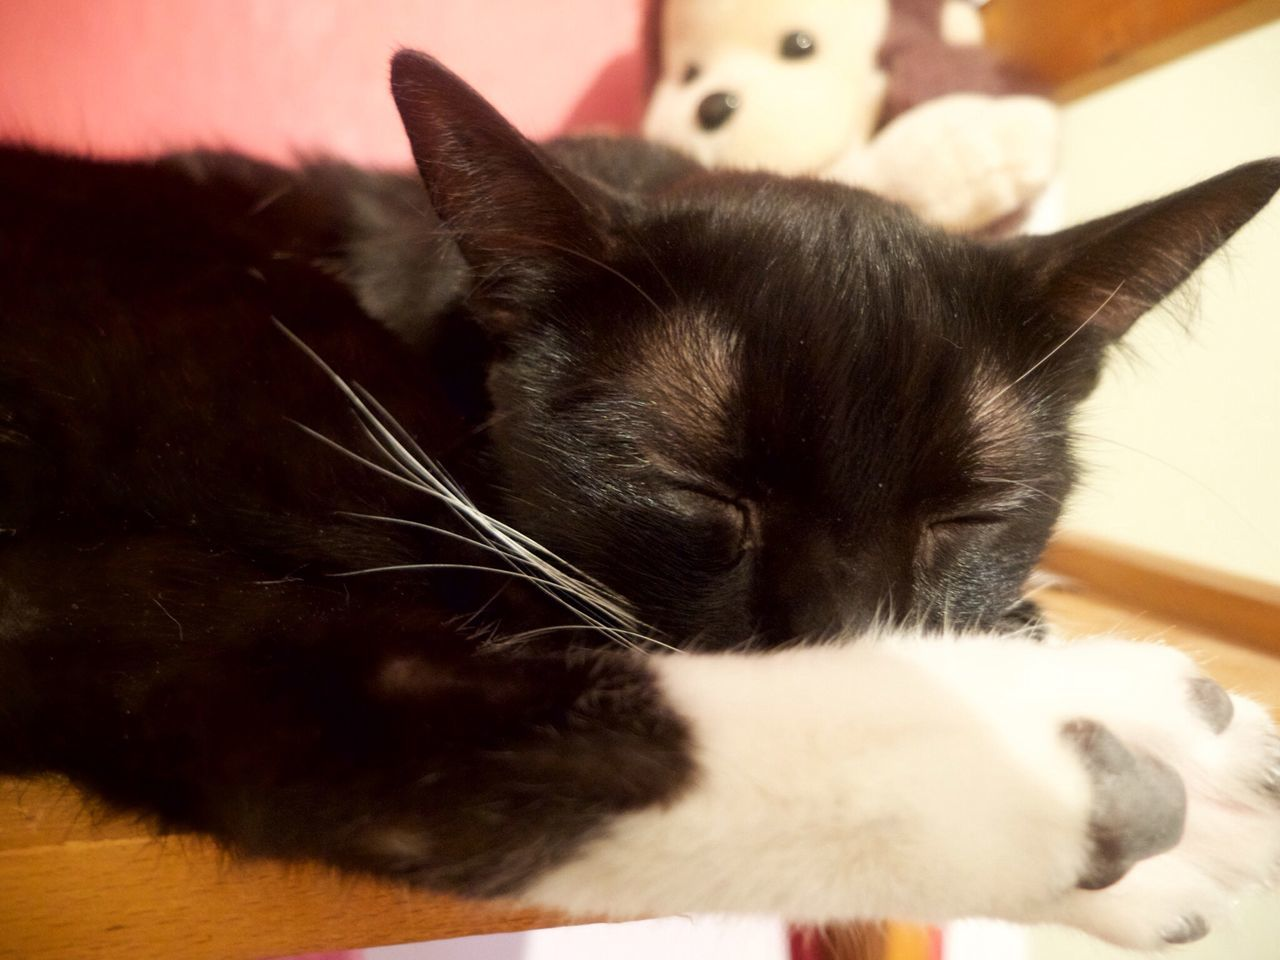 domestic cat, pets, domestic animals, mammal, animal themes, one animal, feline, cat, indoors, relaxation, no people, close-up, whisker, lying down, day